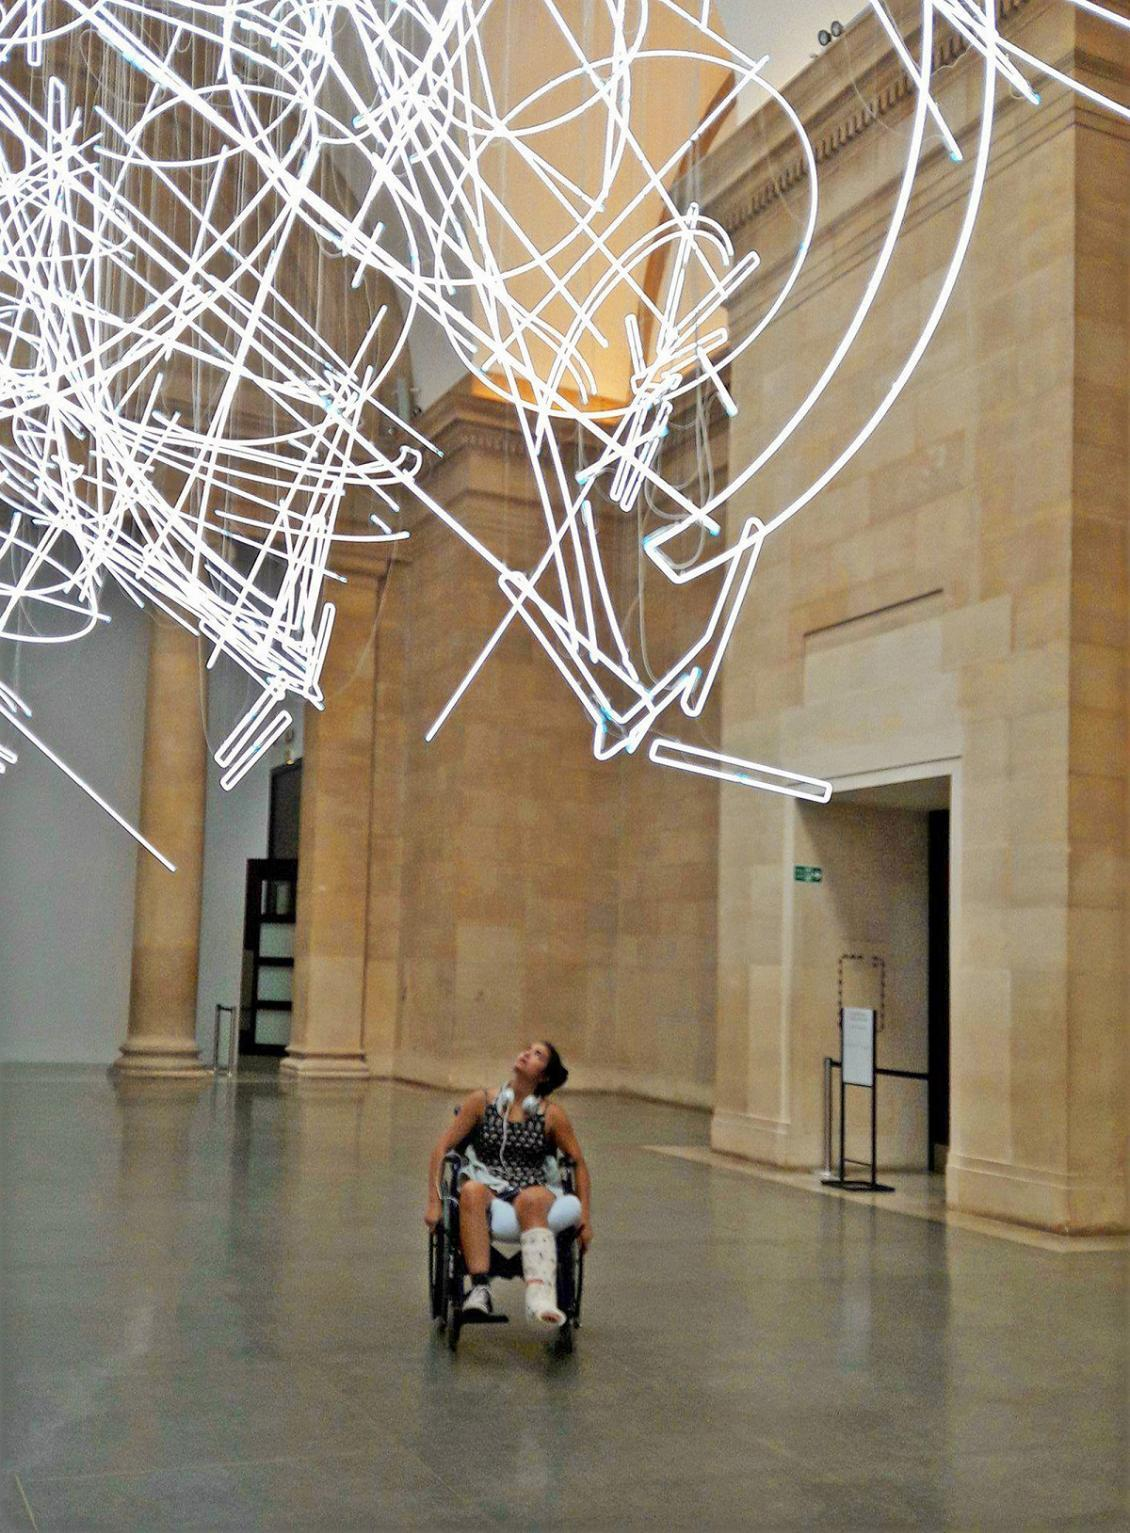 Photo of woman in wheelchair viewing art in the Tate Britain by Mary-Antoinette Smith, PhD